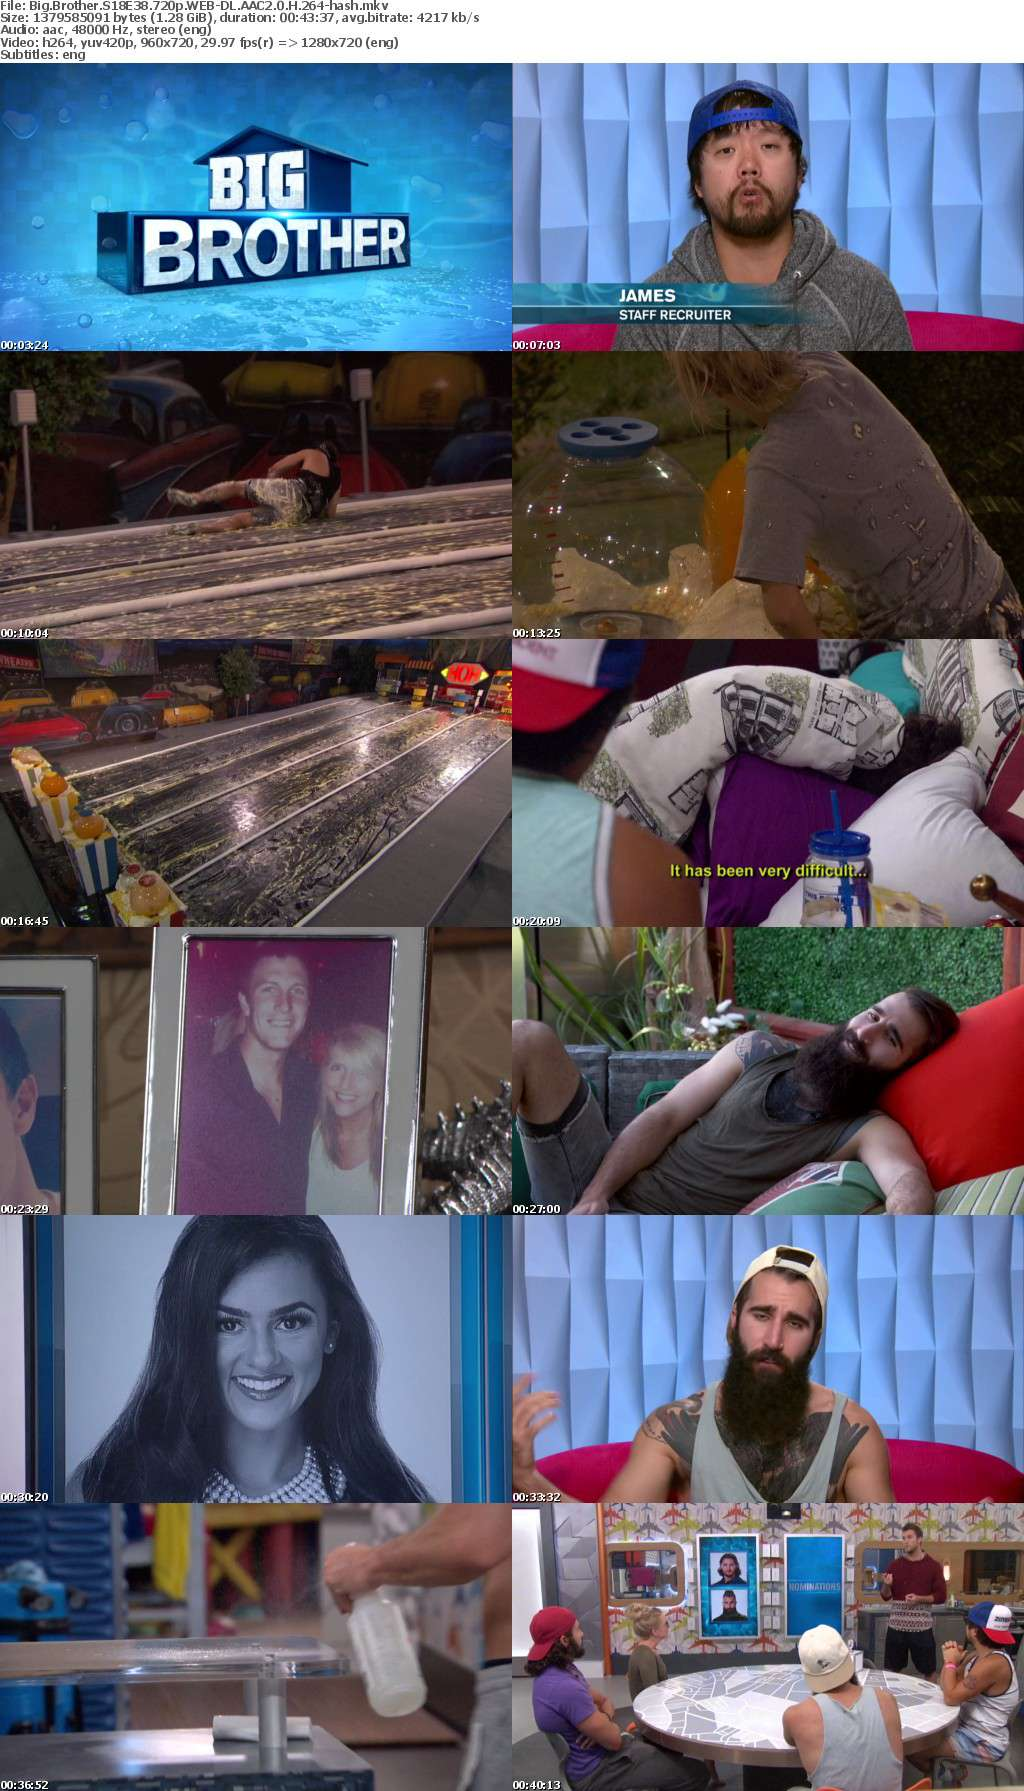 Big Brother S18E38 720p WEB-DL AAC2 0 H 264-hash